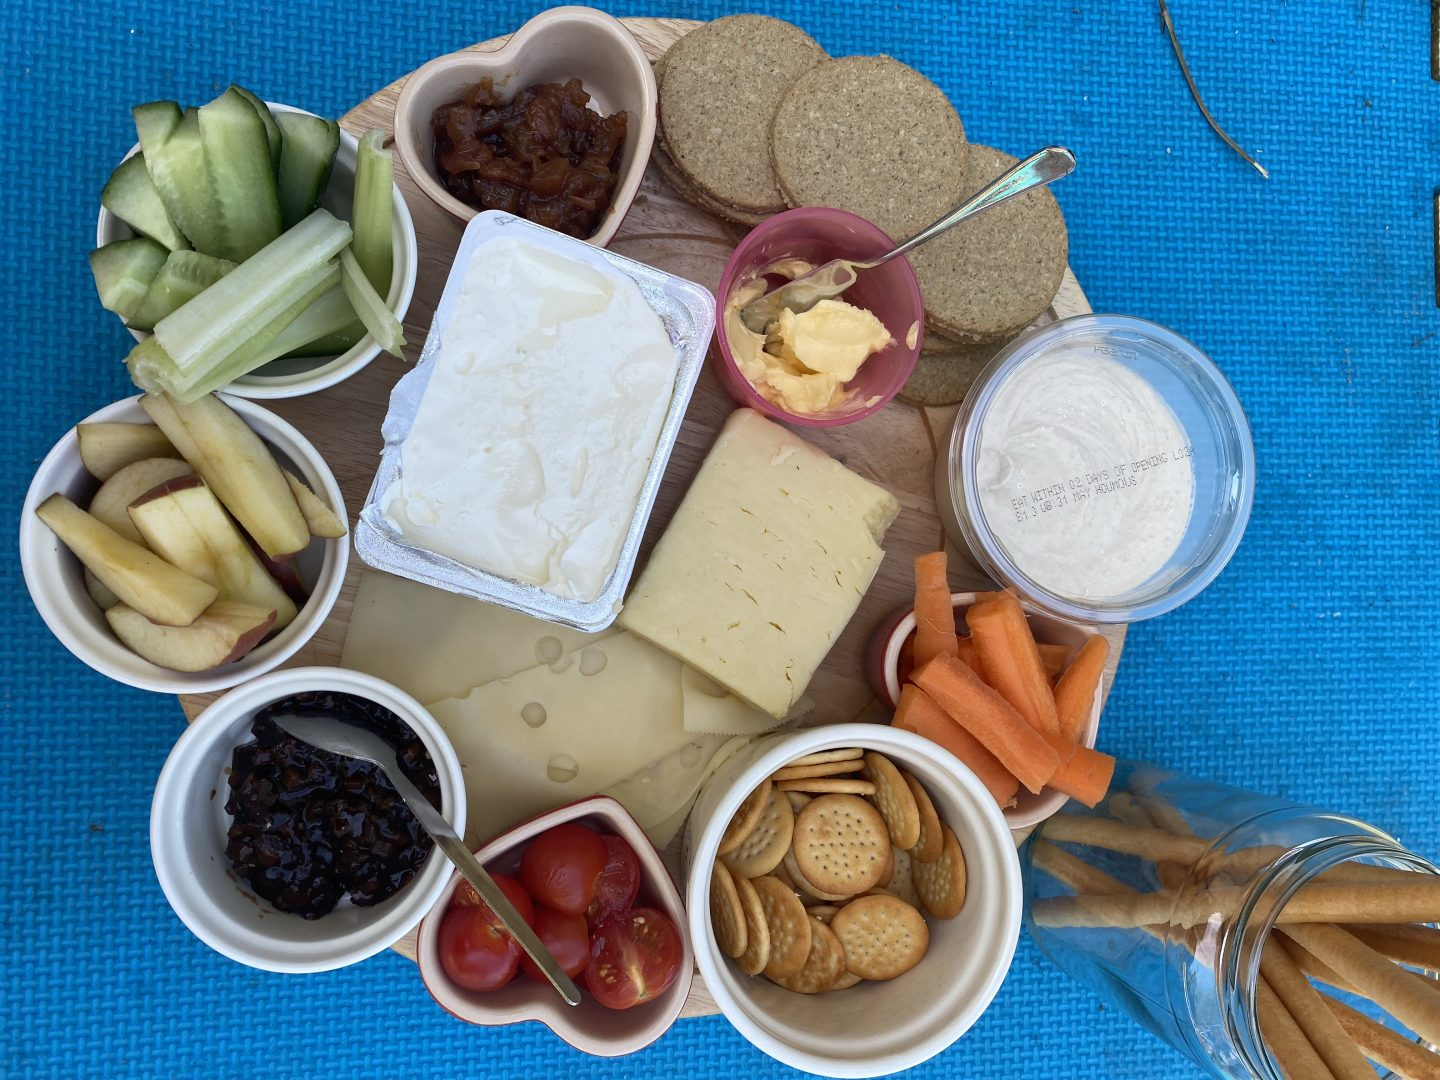 Easy kids lunches for summer with this cheese board